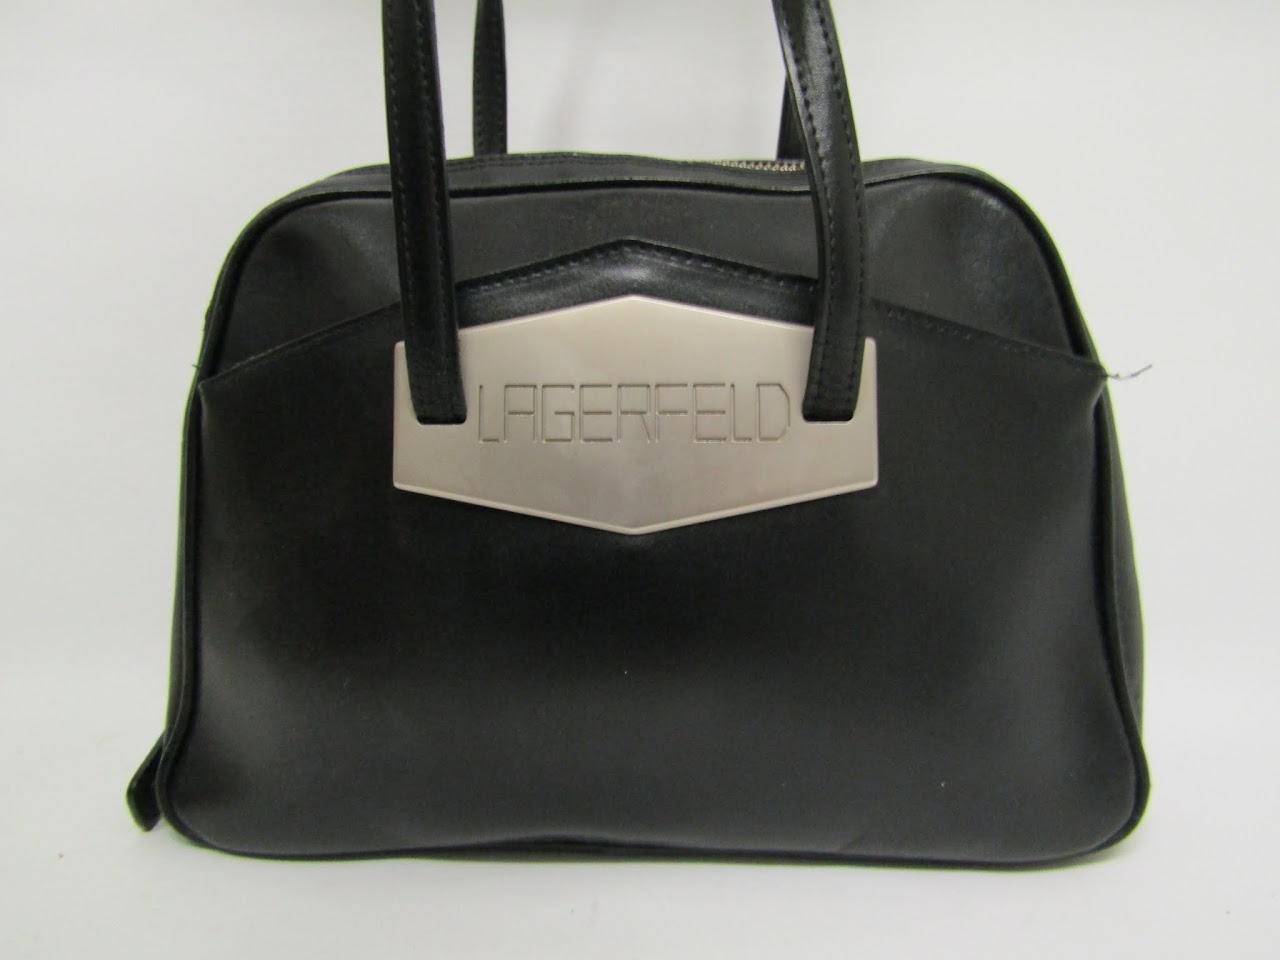 Lagerfeld Shoulder Bag